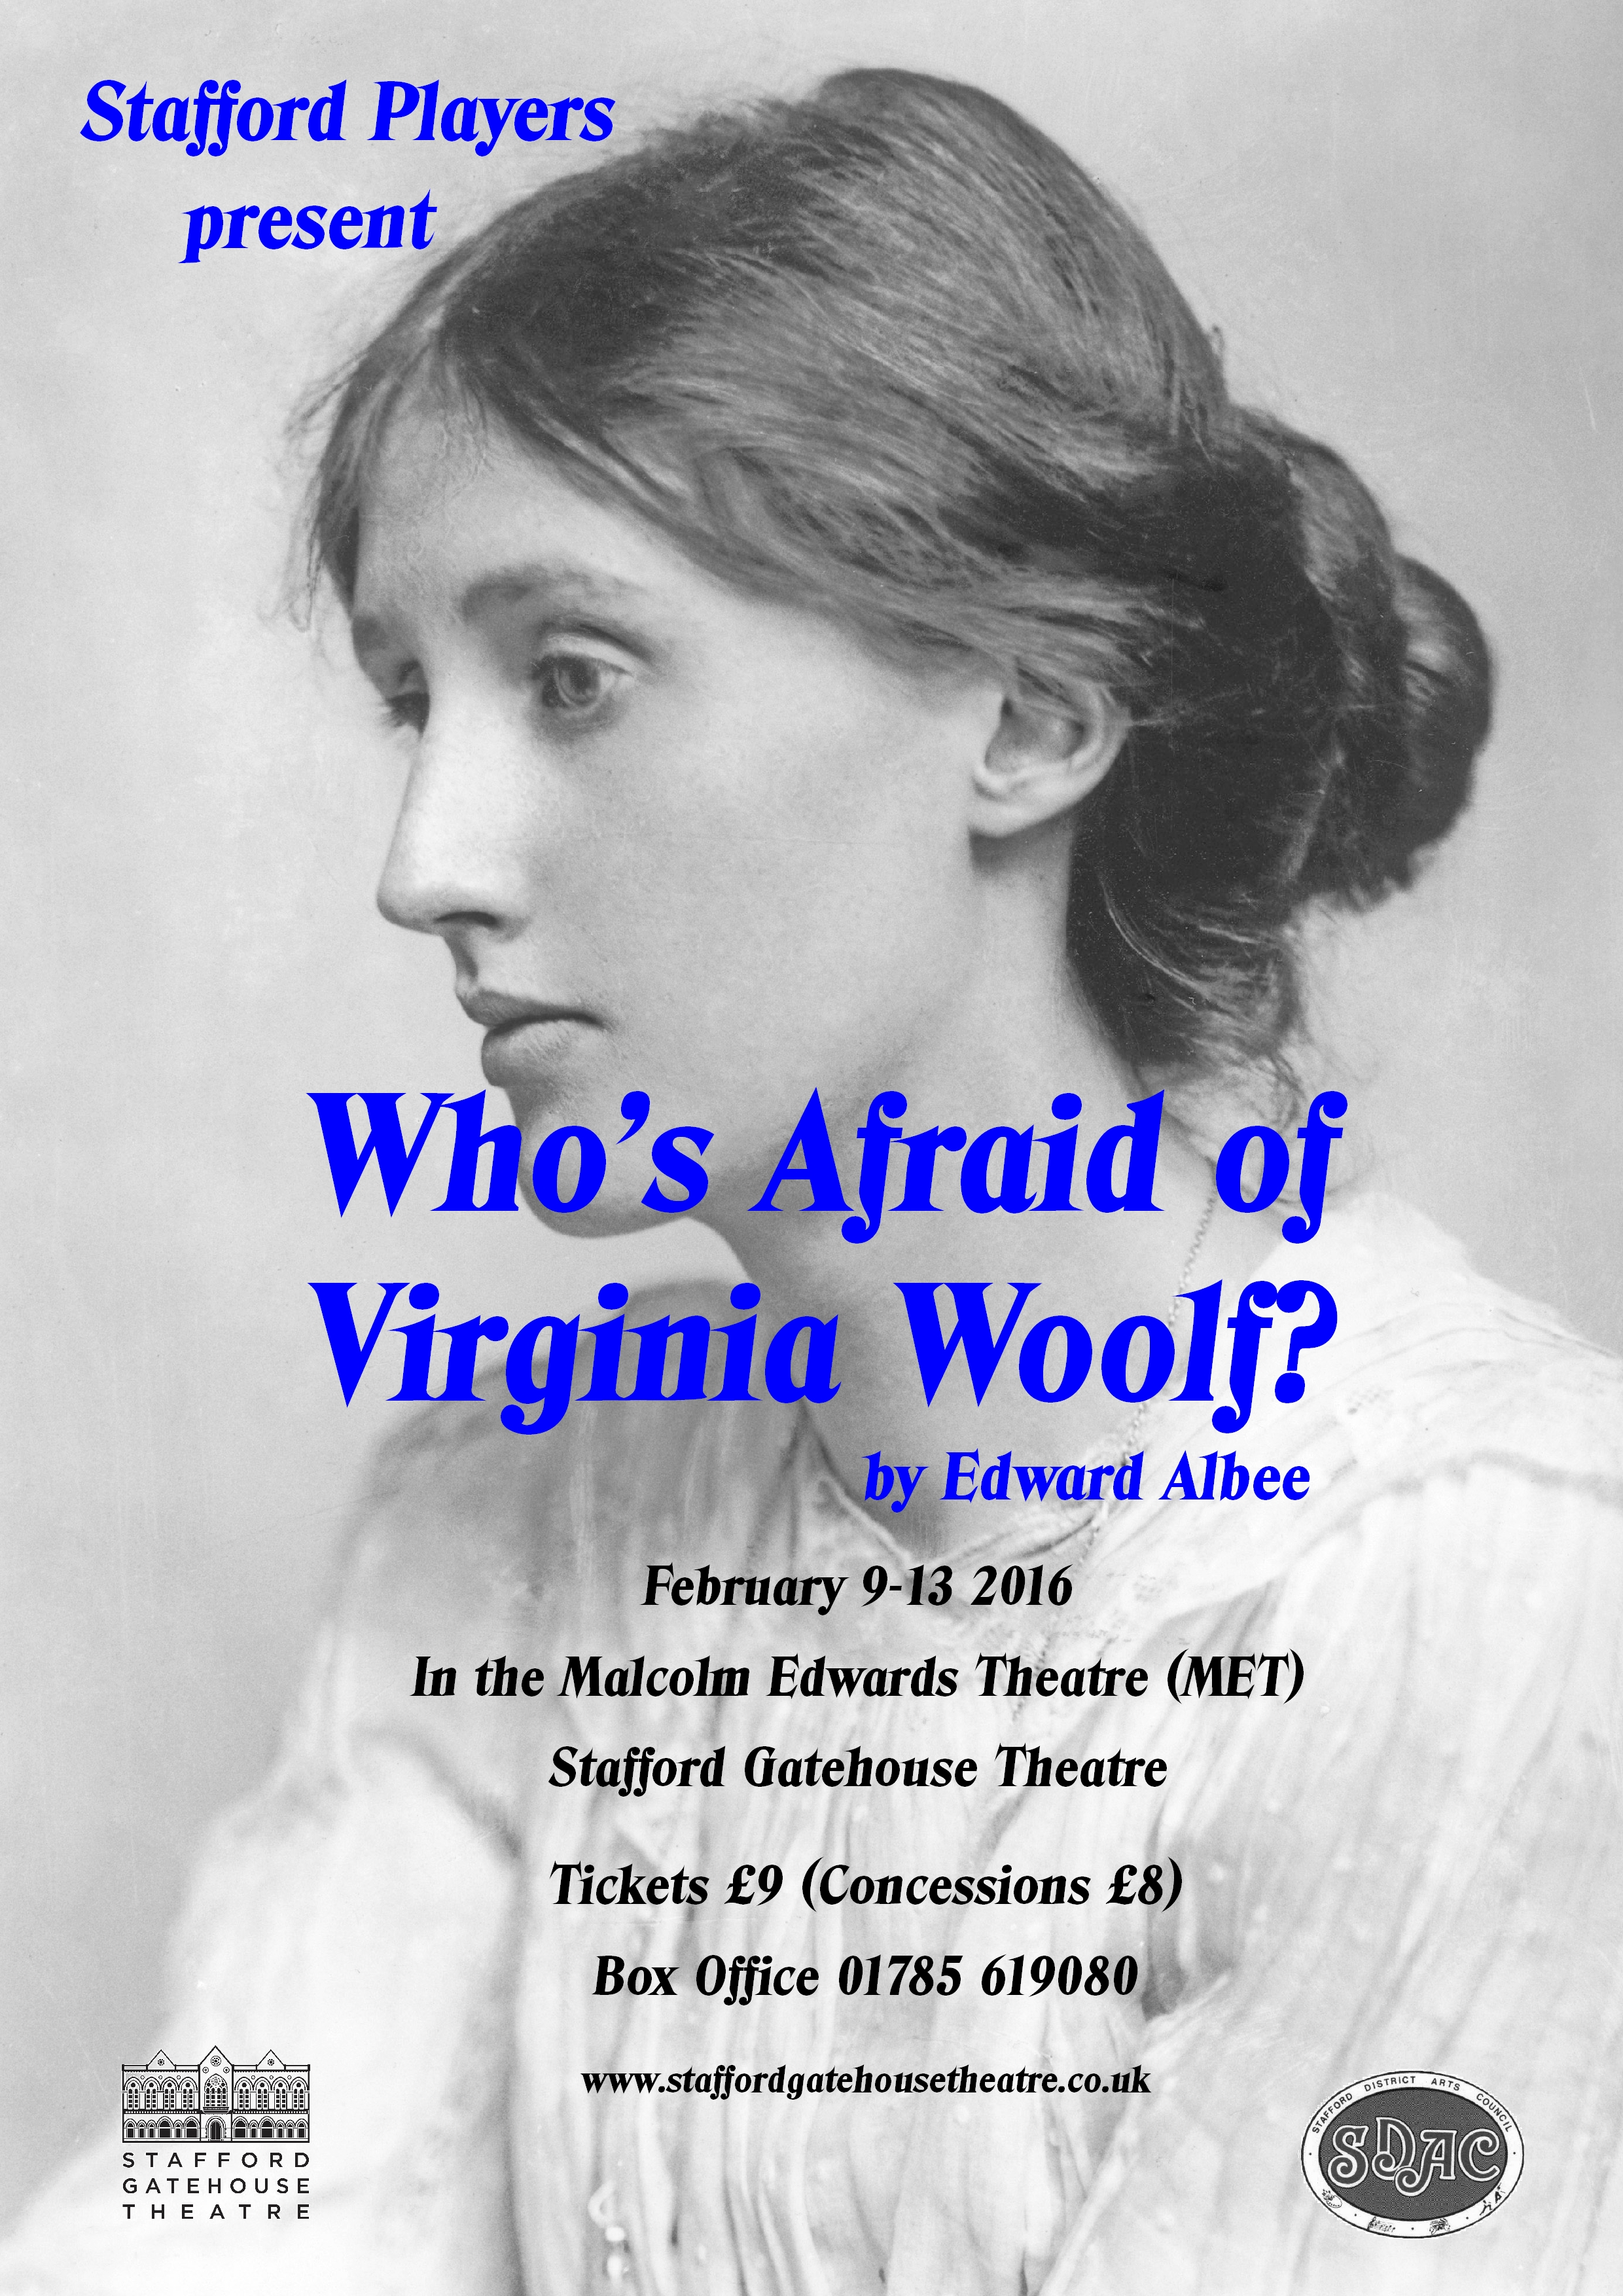 whos afraid of virginia woolf essays Get access to case study of virginia woolf essays only from anti essays listed results 1 - 30 get studying today and get the grades you want only at my account search my account help  the production of whos afraid of virginia woolf, couples and families were pictured  or fears while the study of science or in this case for nick.